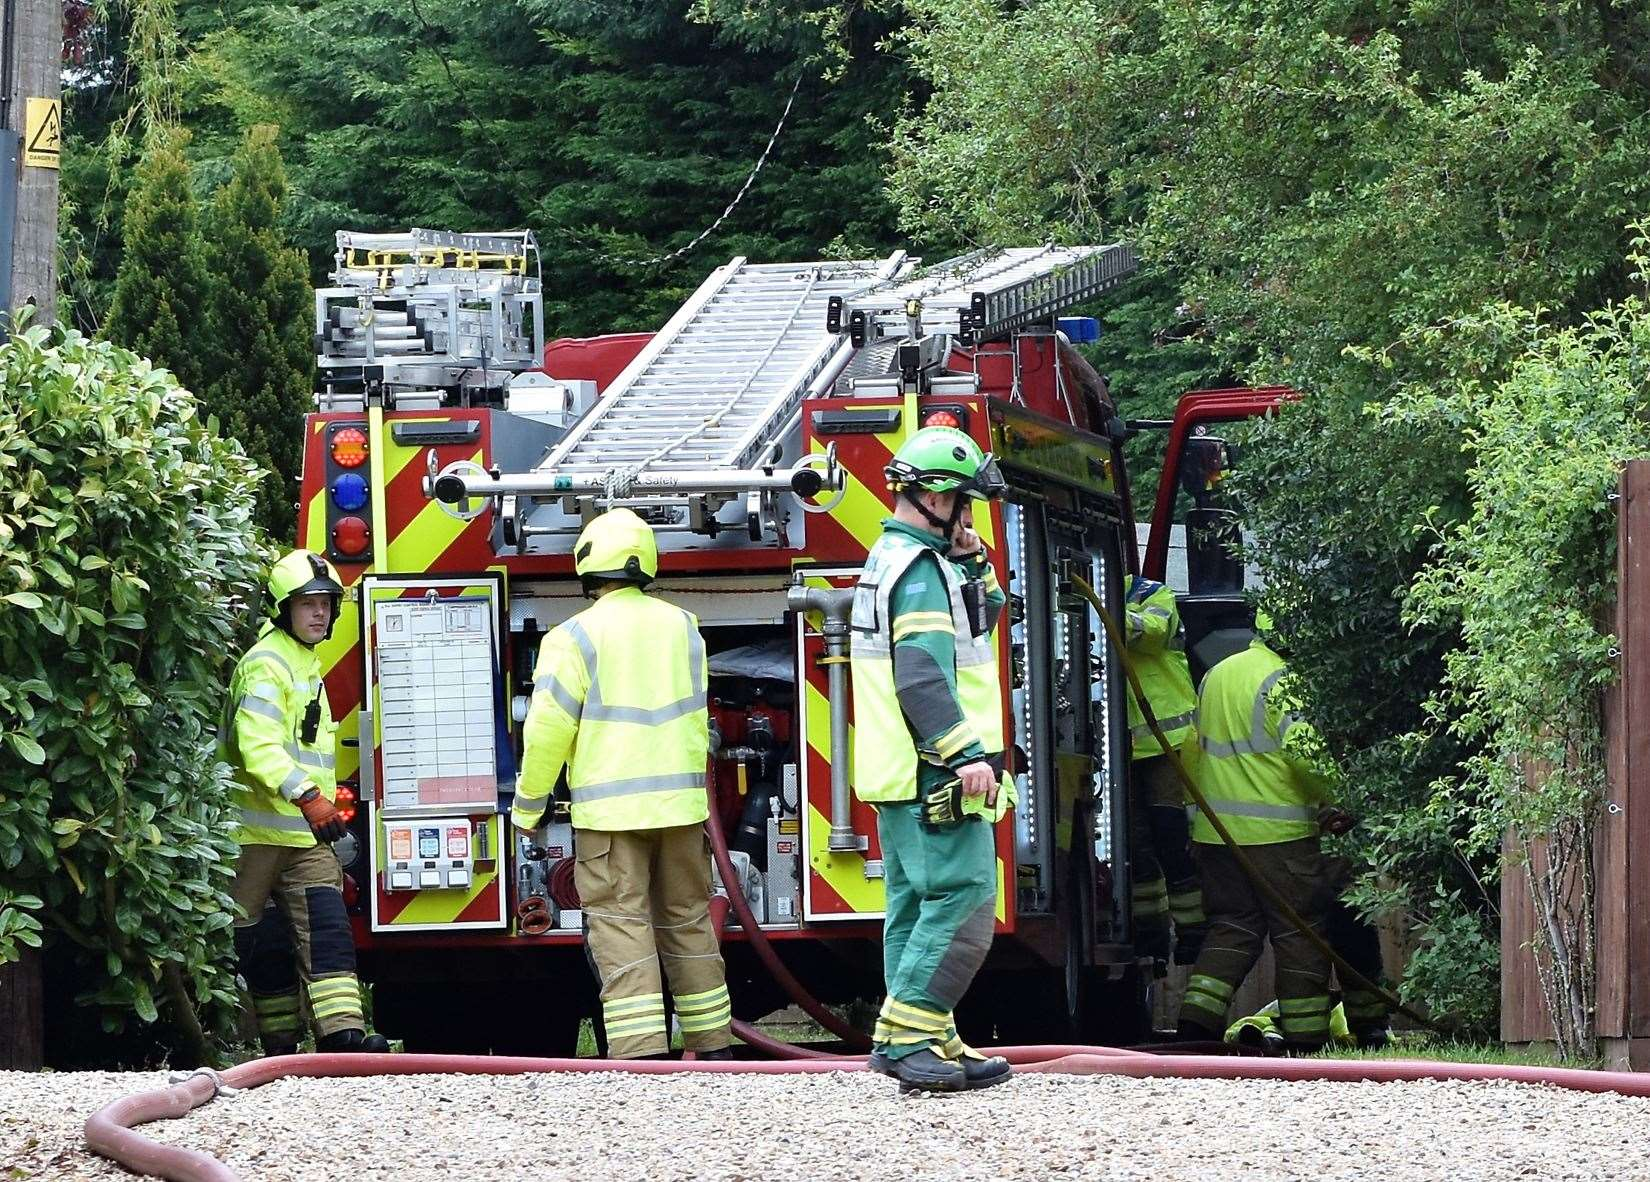 Emergency crews at scene of suspected gas explosion in Lidgate (10092843)